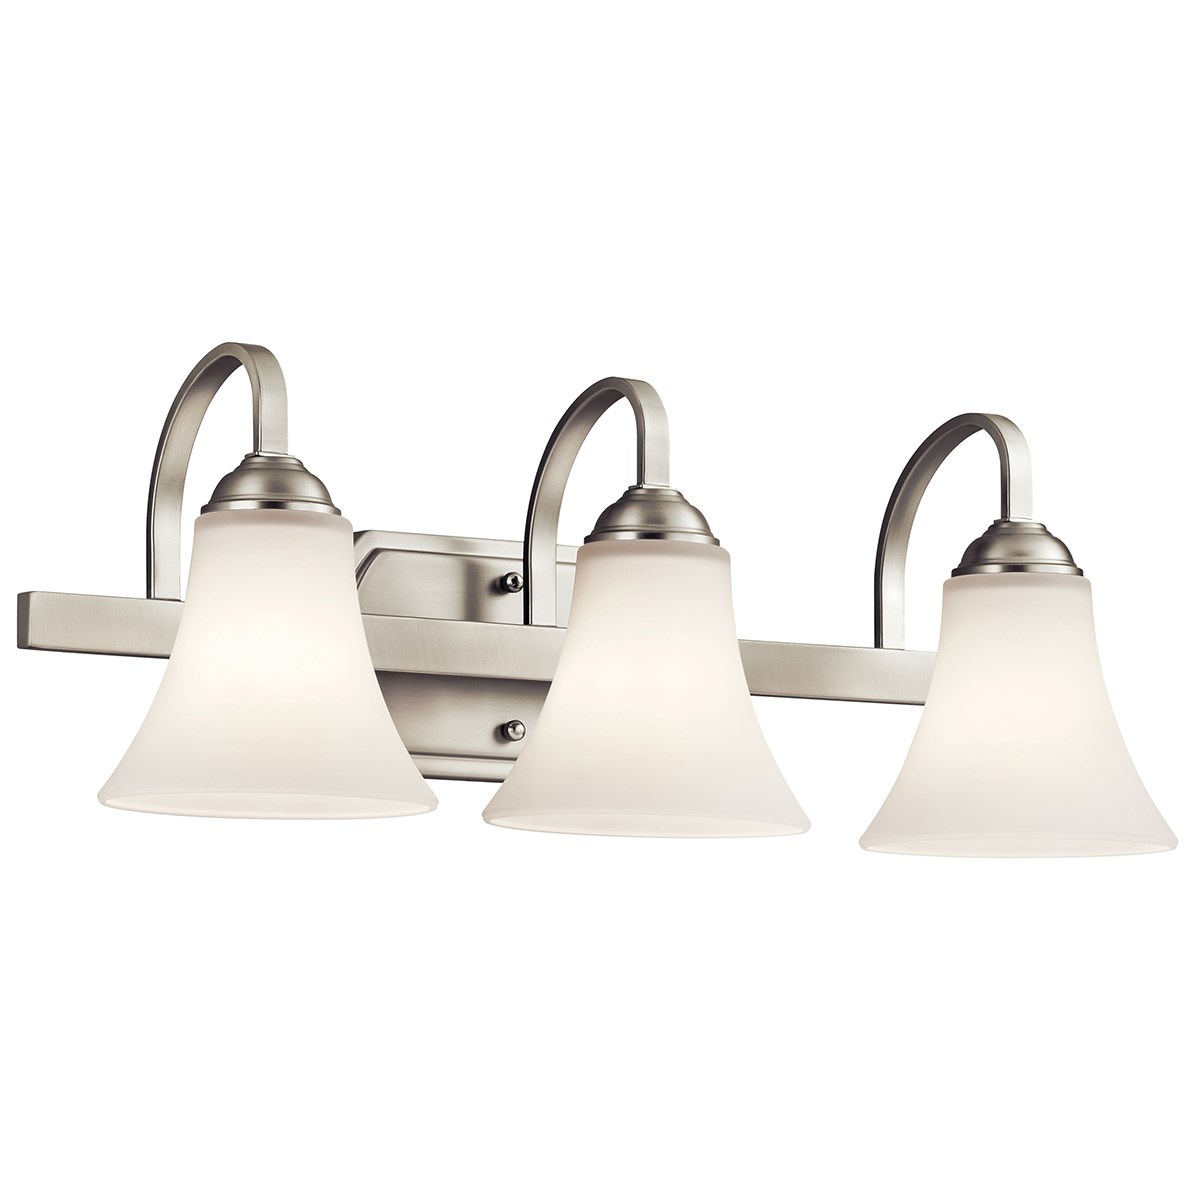 Keiran™ 3 Light Vanity Light Brushed Nickel